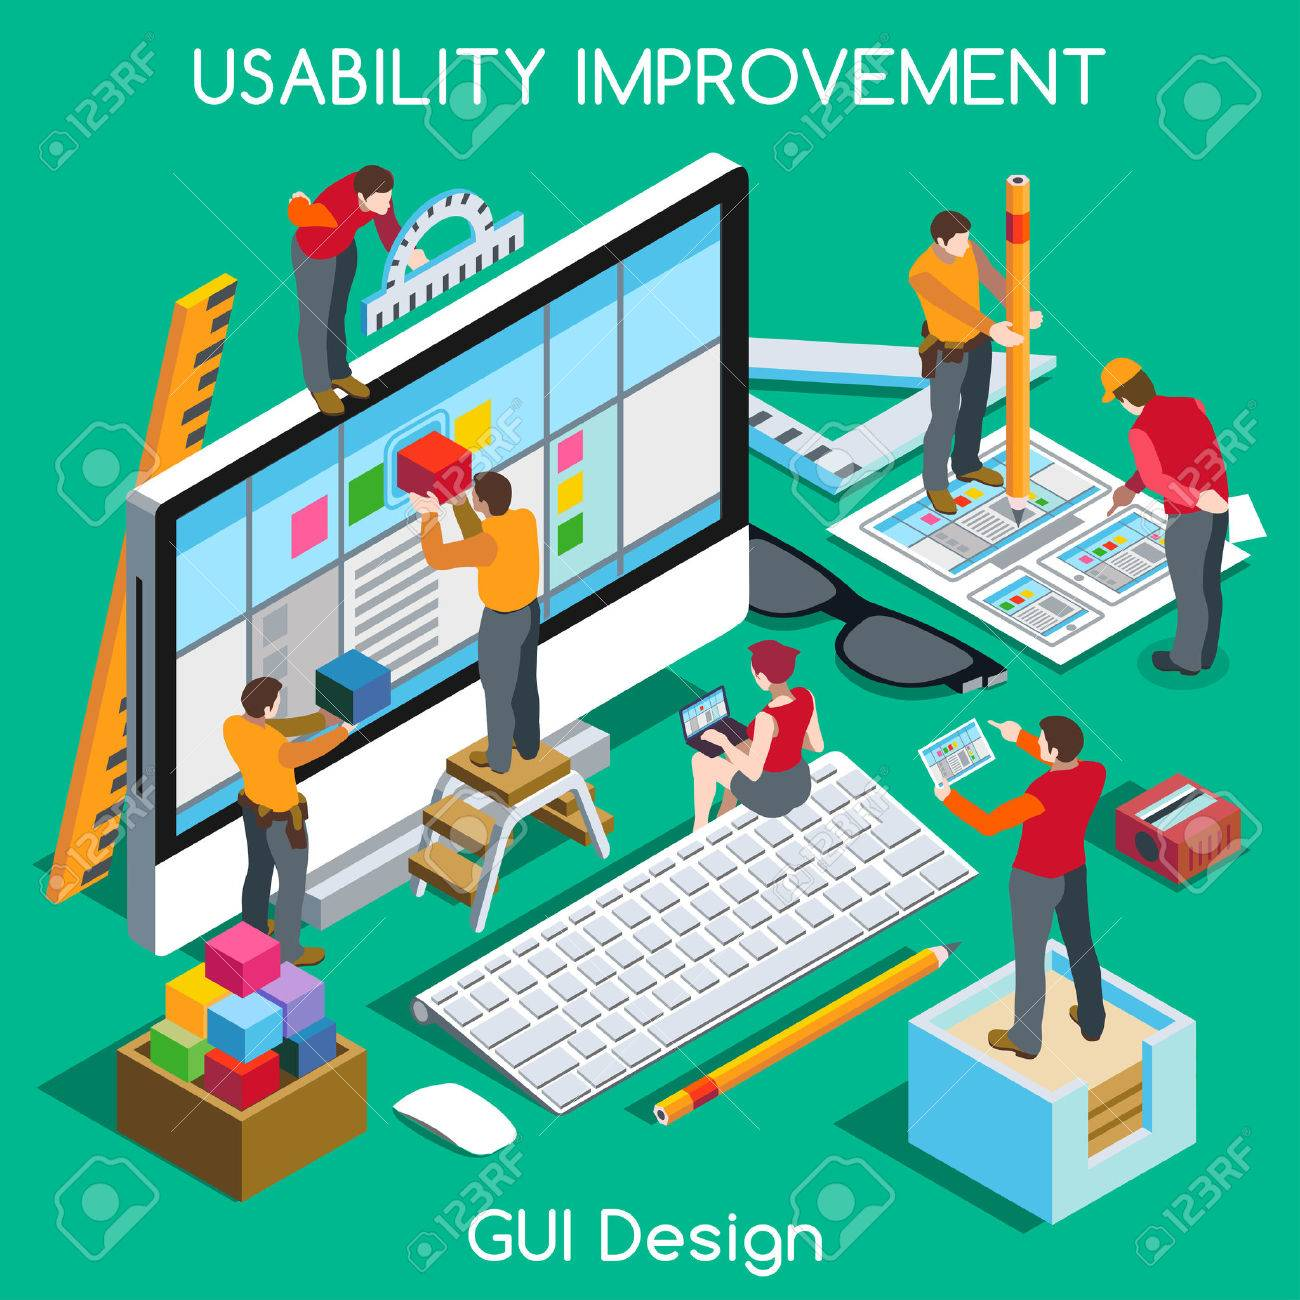 GUI design for Usability and User Experience Improvement. Interacting People Unique Isometric Realistic Poses. NEW bright palette 3D Flat Vector Concept. Team Creating Great Web Graphic User Interfac - 44413313